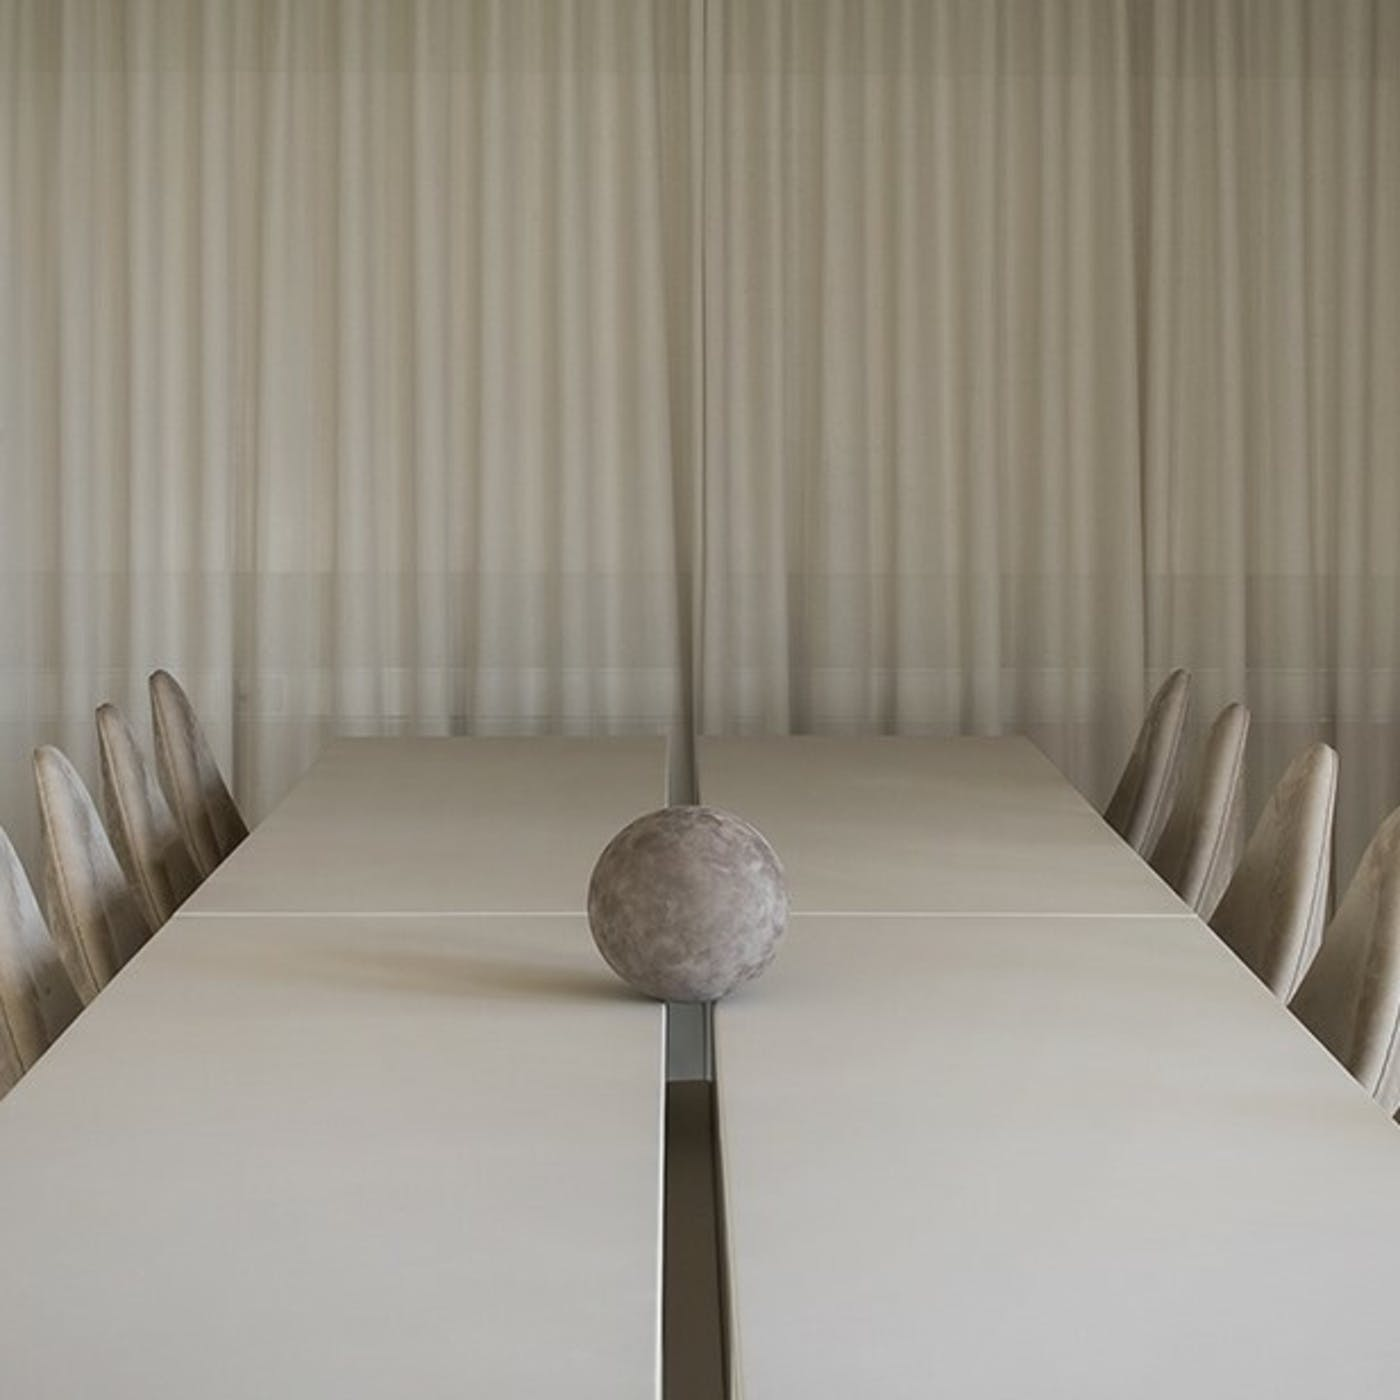 4 Our bespoke conference table and Drop Chairs by Arne Jacobsen from Fritz Hansen all crafted with Sørensen Leather Photo Jonas Bjerre Poulse